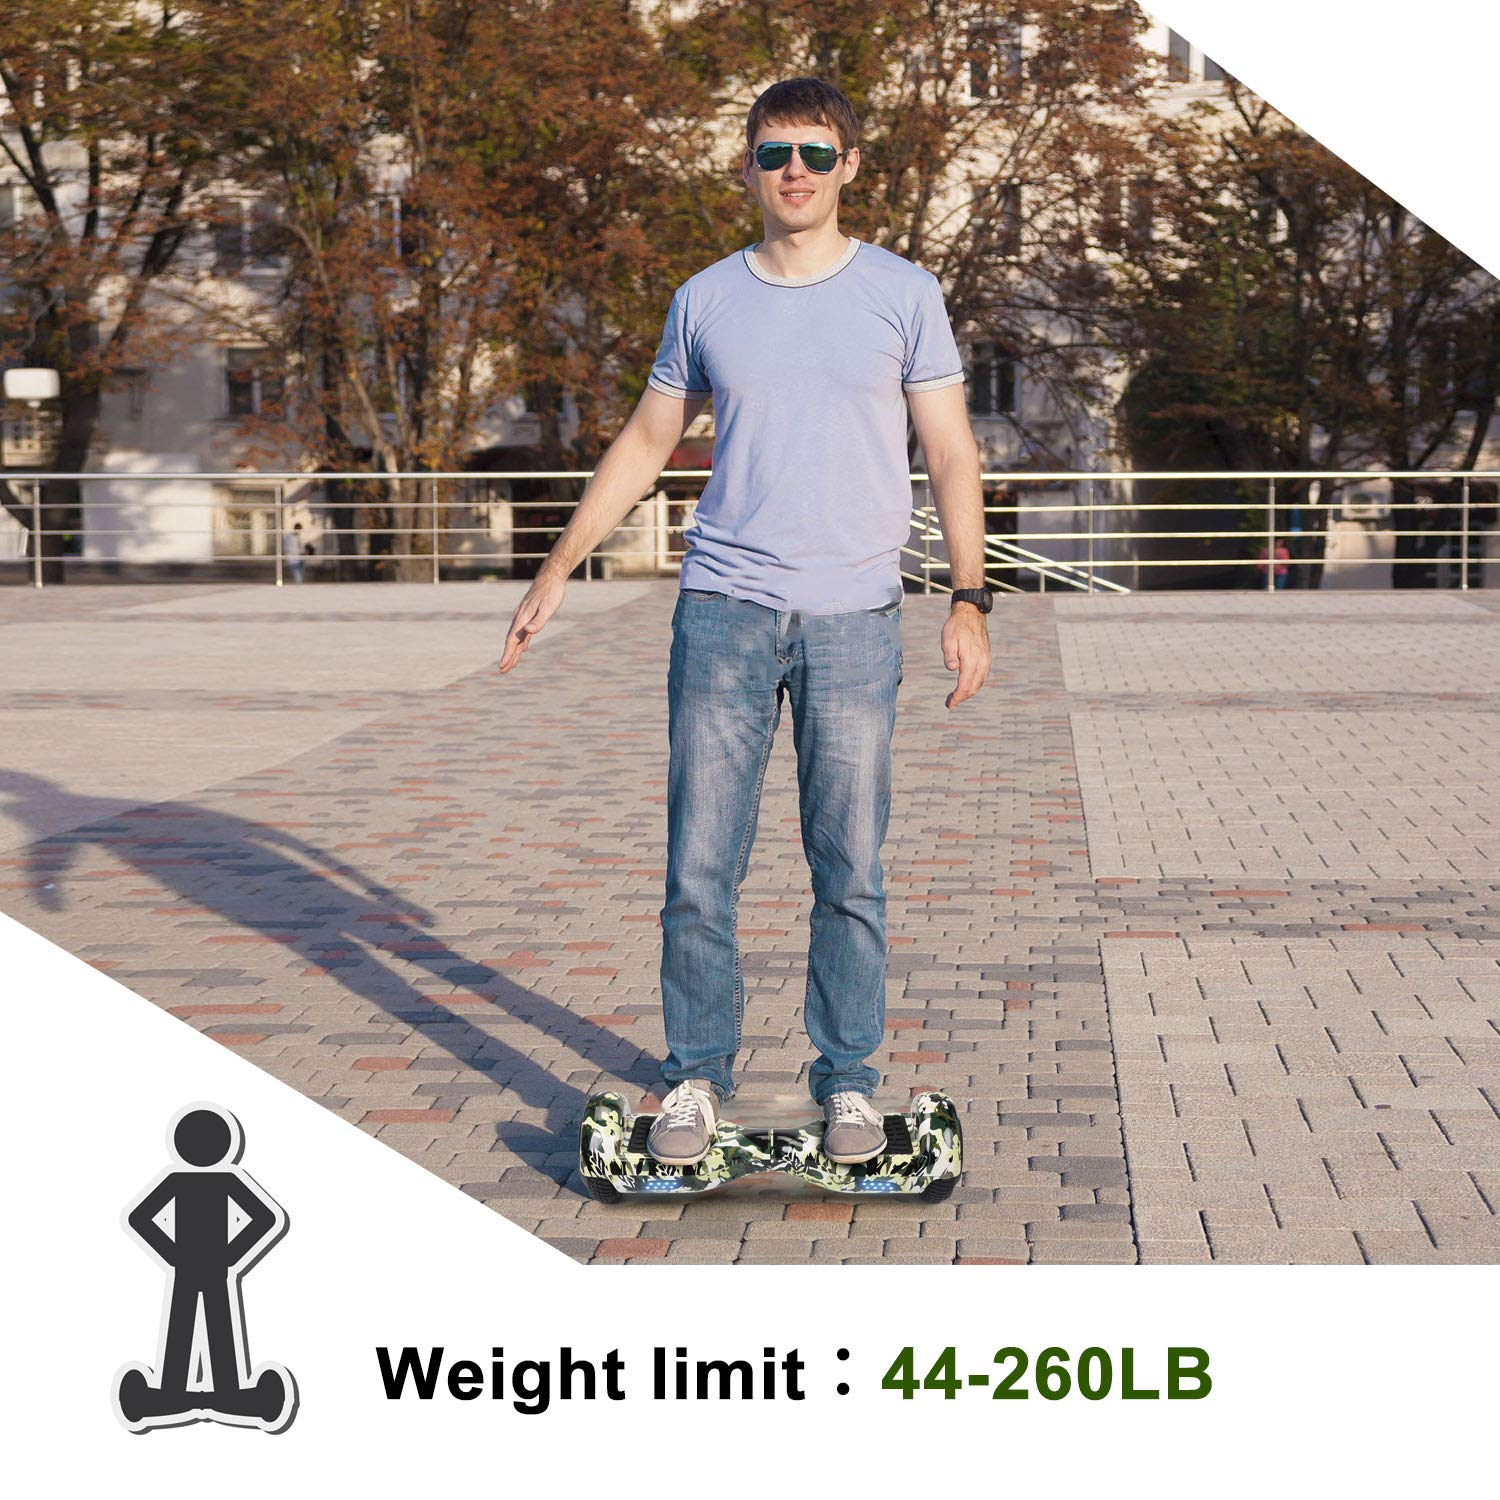 SISIGAD Hoverboard Self Balancing Scooter 6.5'' Two-Wheel Self Balancing Hoverboard with LED Lights Electric Scooter for Adult Kids Gift UL 2272 Certified Fun Edition - Woodland Camo by SISIGAD (Image #6)